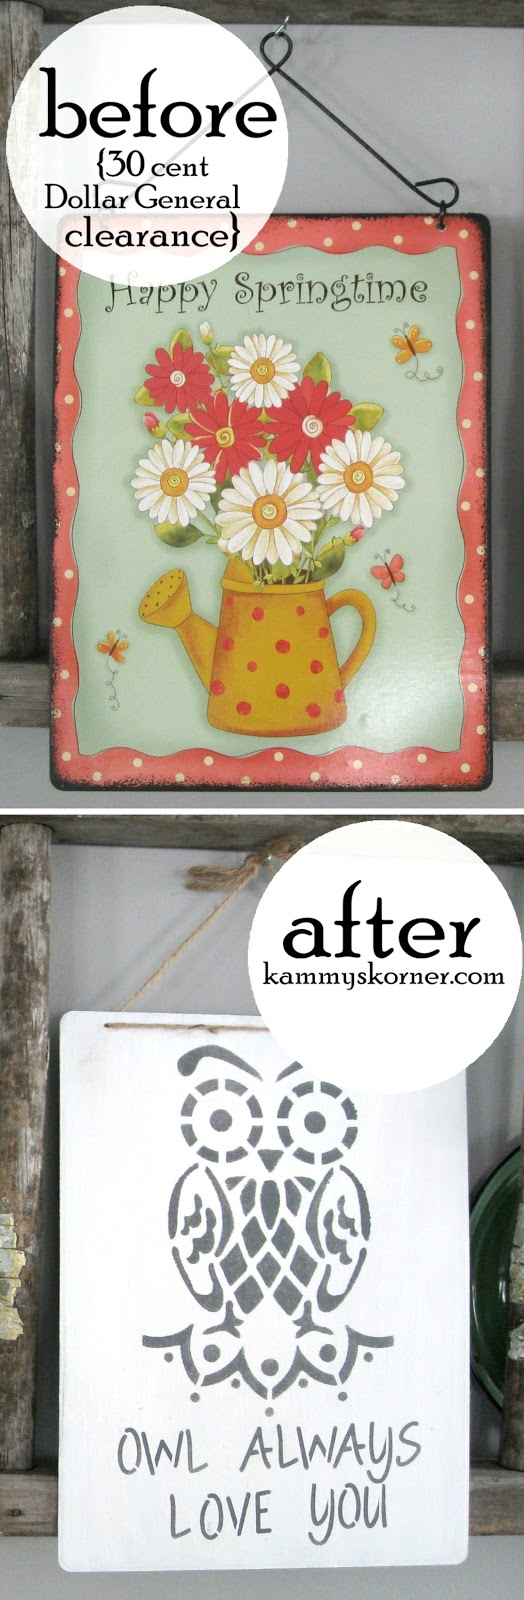 Kammy's Korner: Owl Always Love You Metal Sign -Thrift Store Makeover